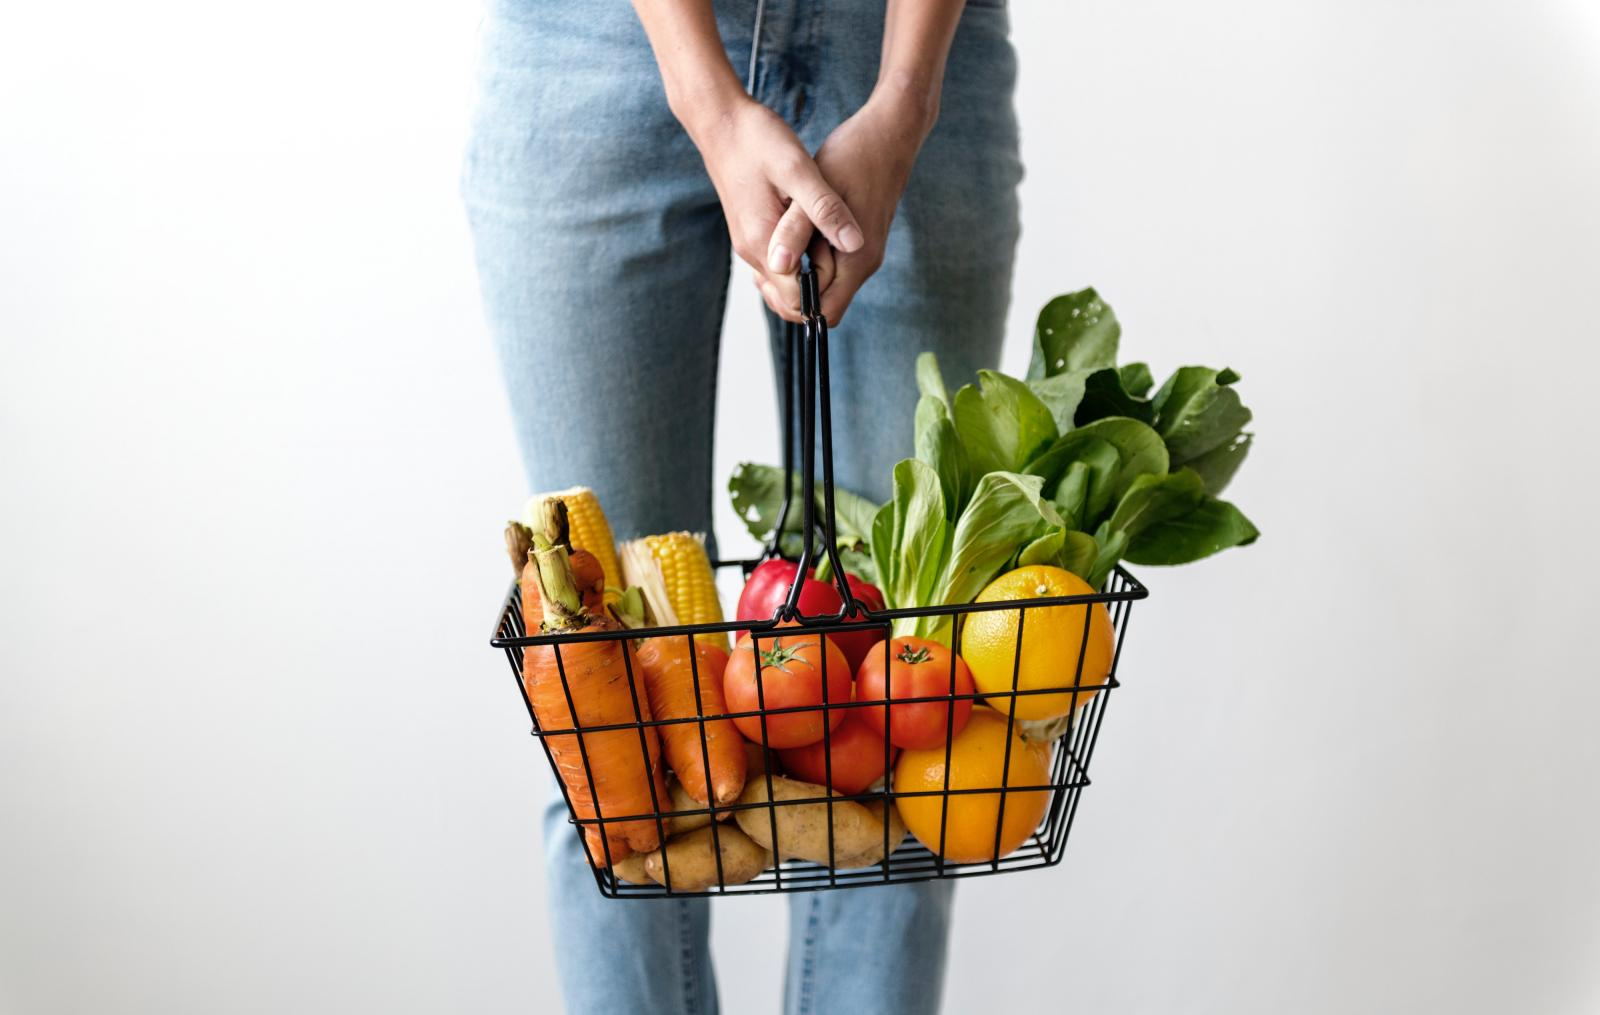 Woman holding a basket of food. Photo credit: Pexels